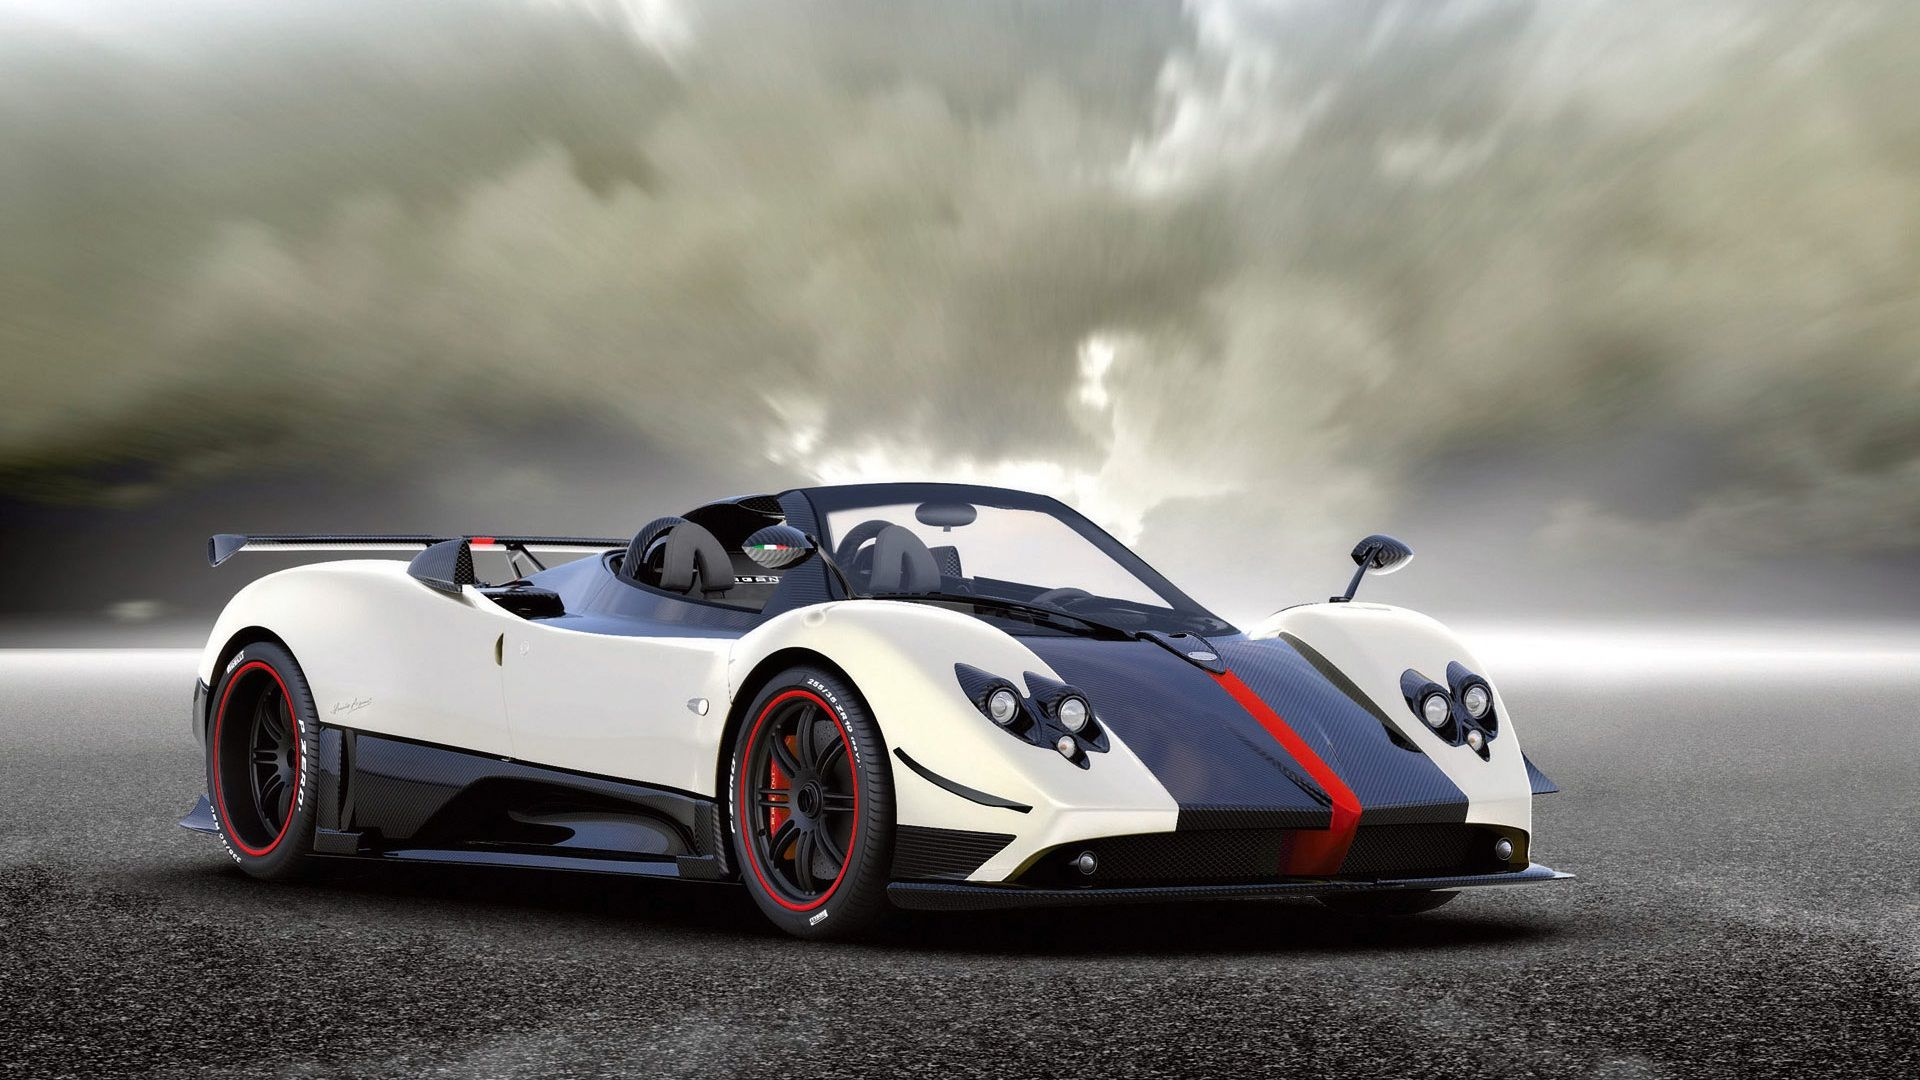 download Pagani CAR HD Wallpaper